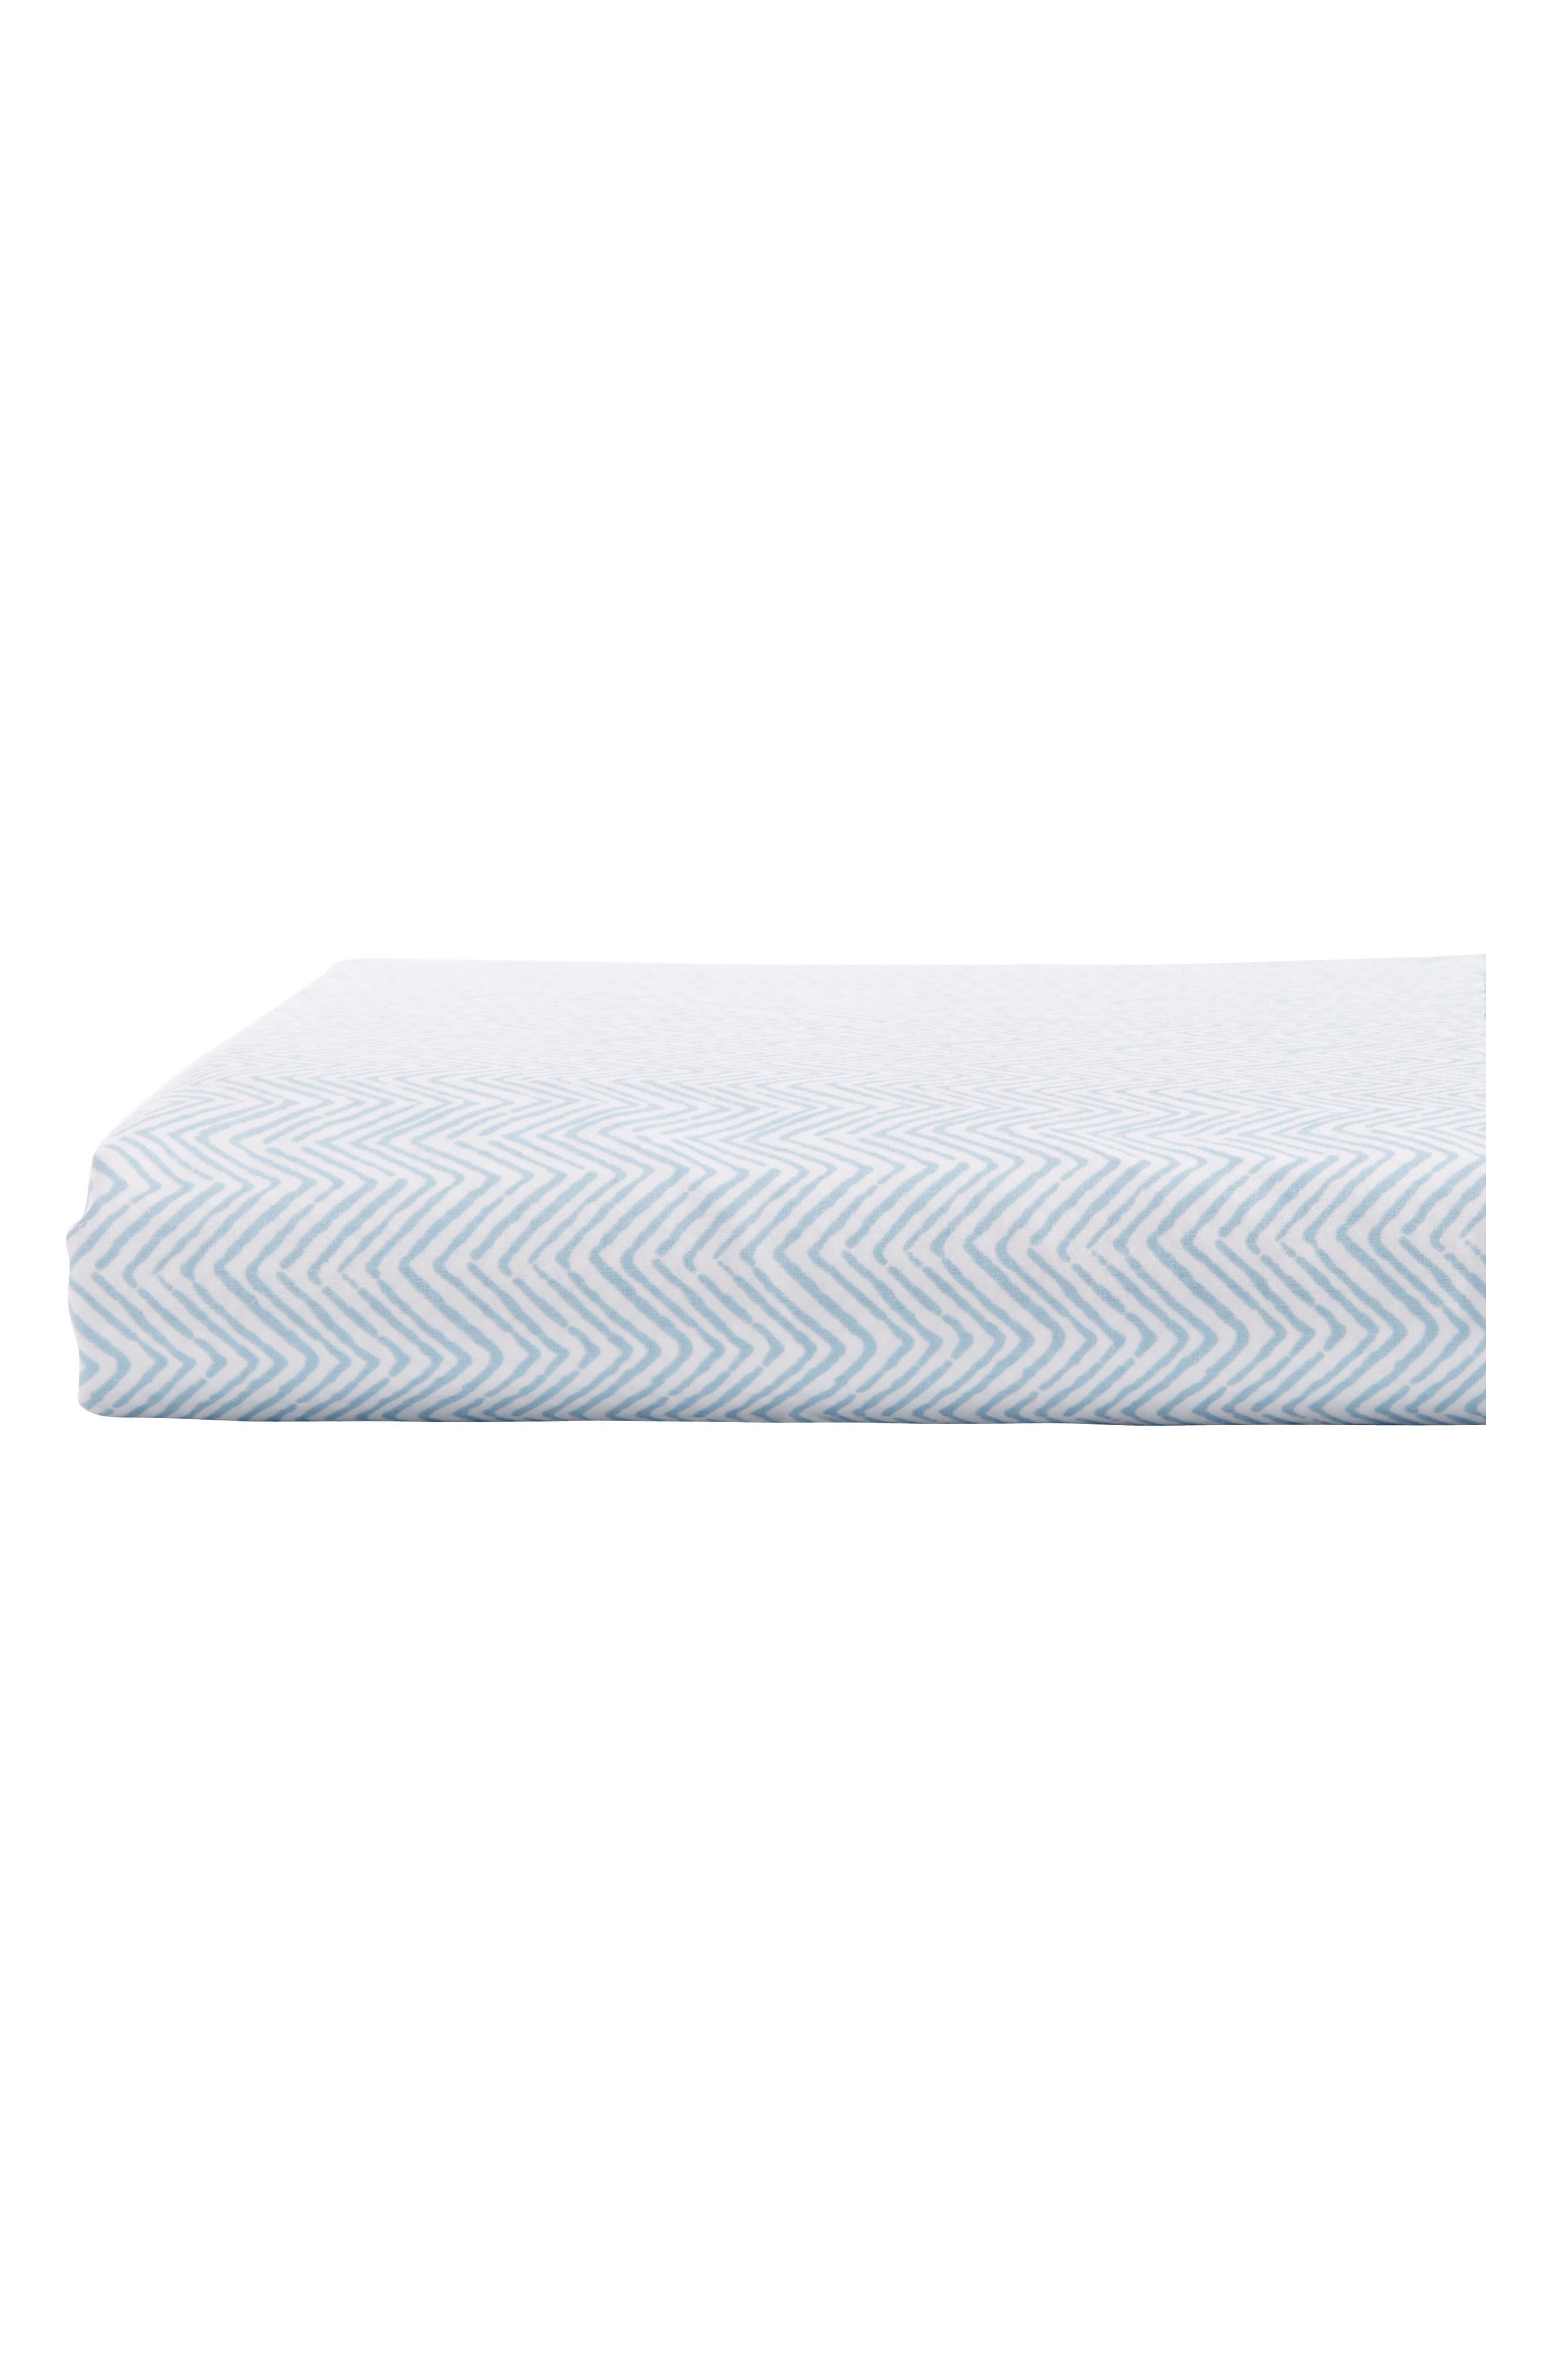 Chevron 400 Thread Count Fitted Sheet,                         Main,                         color, 400